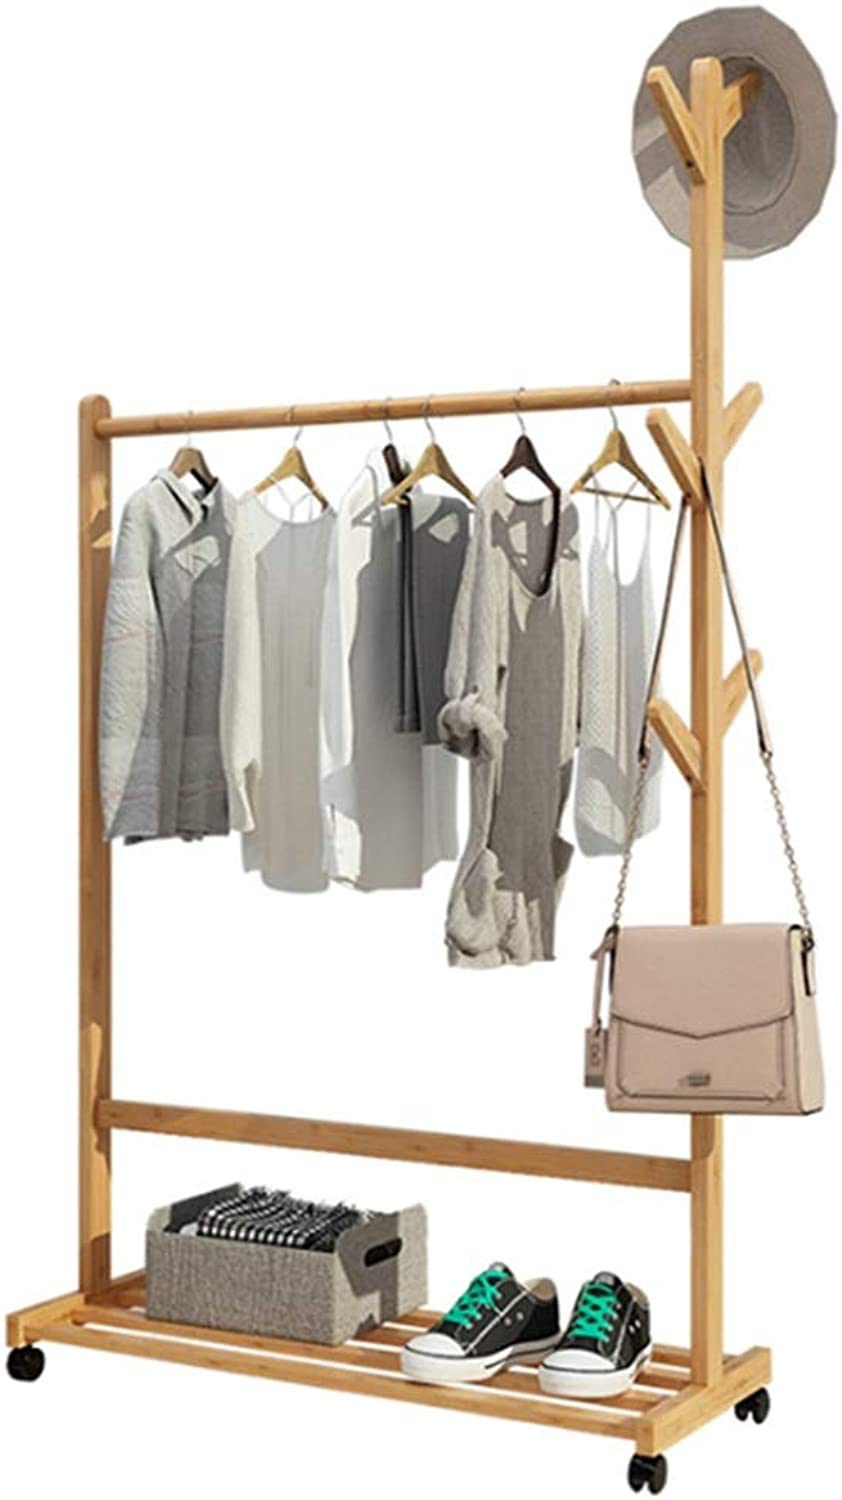 Standing Coat Racks Bamboo Floor Bedroom Hanger Home Clothes Rack Simple Coat Rack Solid Wood Multifunctional Mobile Storage Rack -0223